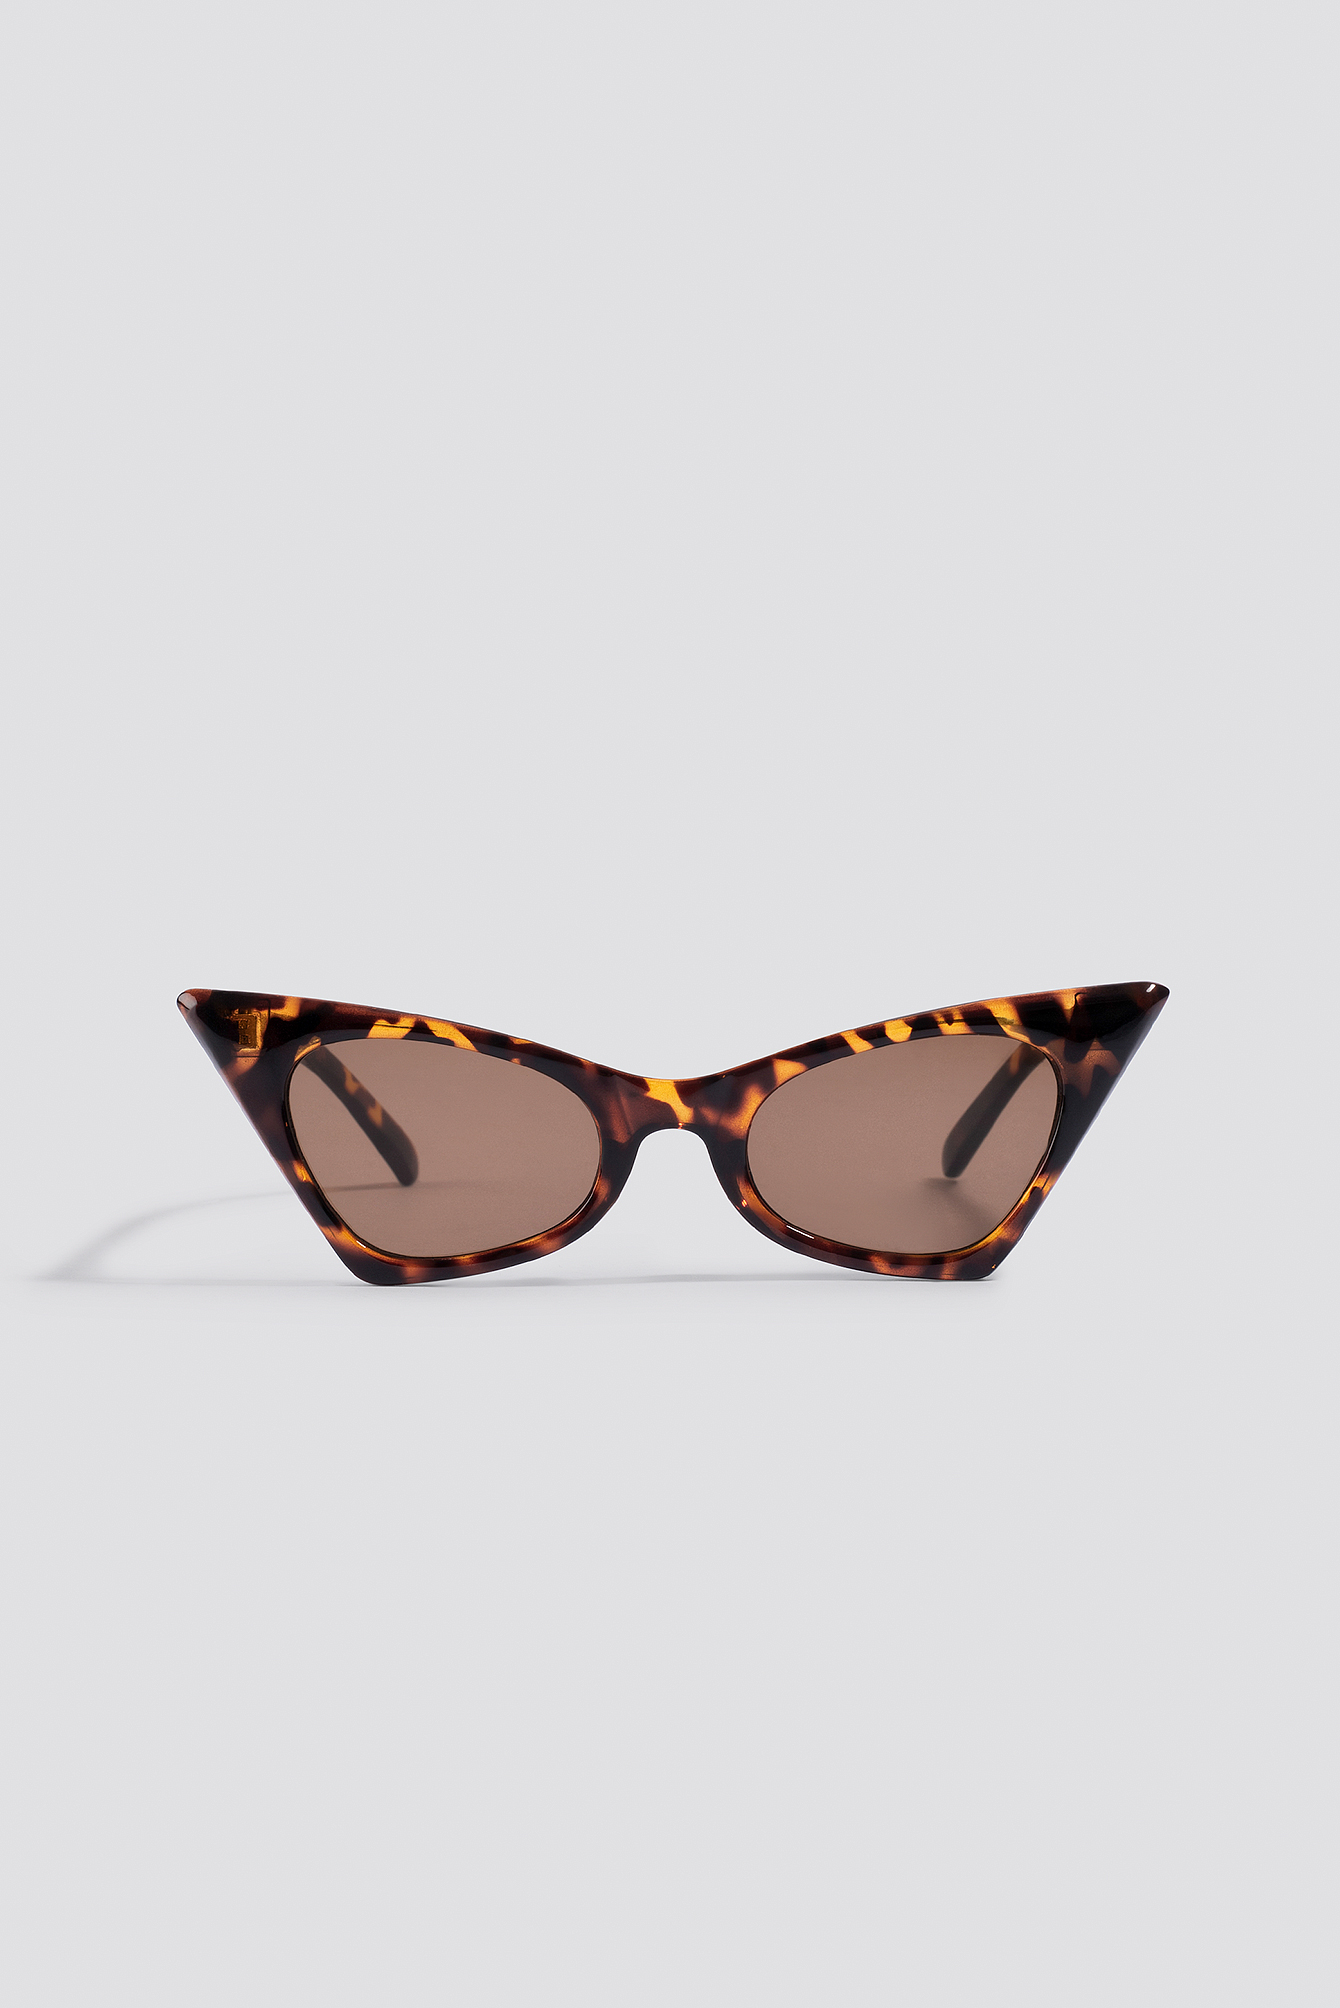 The Sharp Top Cat Eye Sunglasses by NA-KD Accessories features thin sleek temples and frames and a sharp cat-eye design.